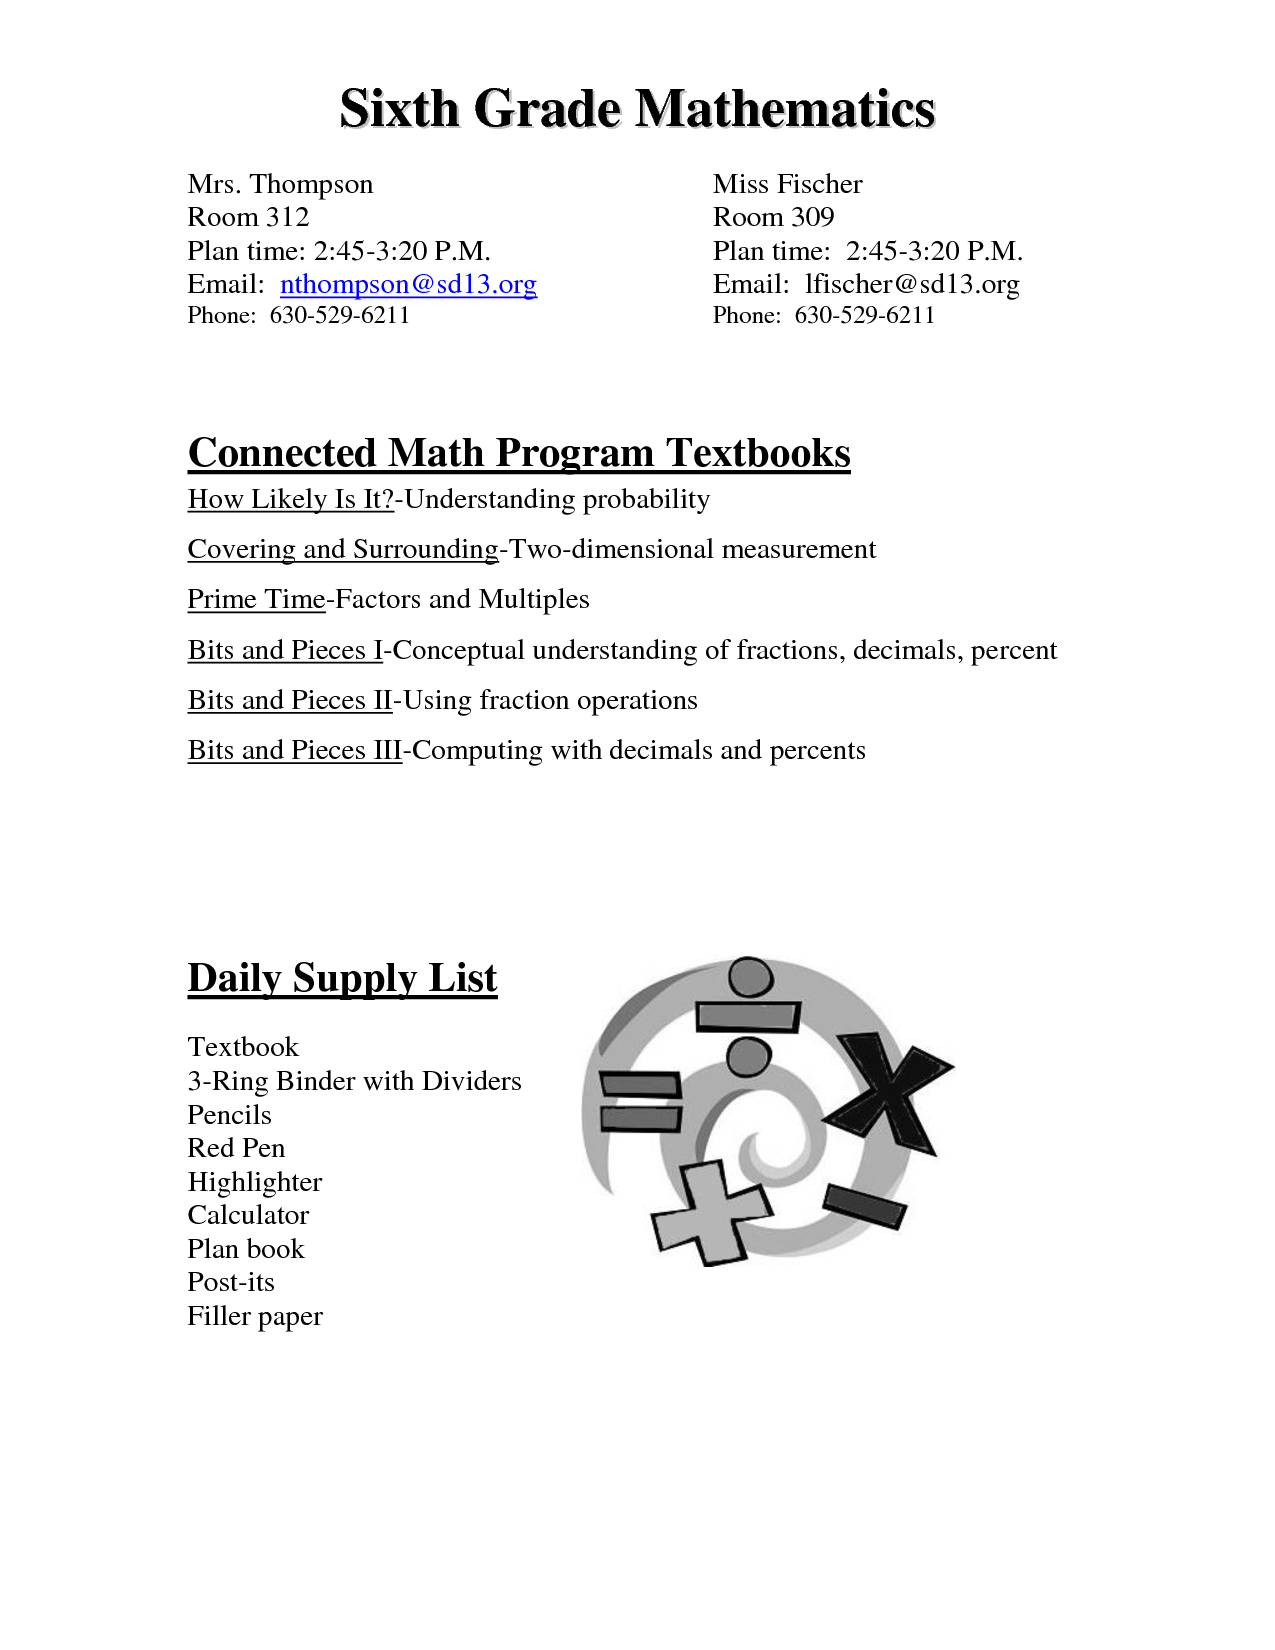 Math Worksheet For 6th Grade Sixth Grade Math Worksheets New – Math Worksheets for Sixth Grade